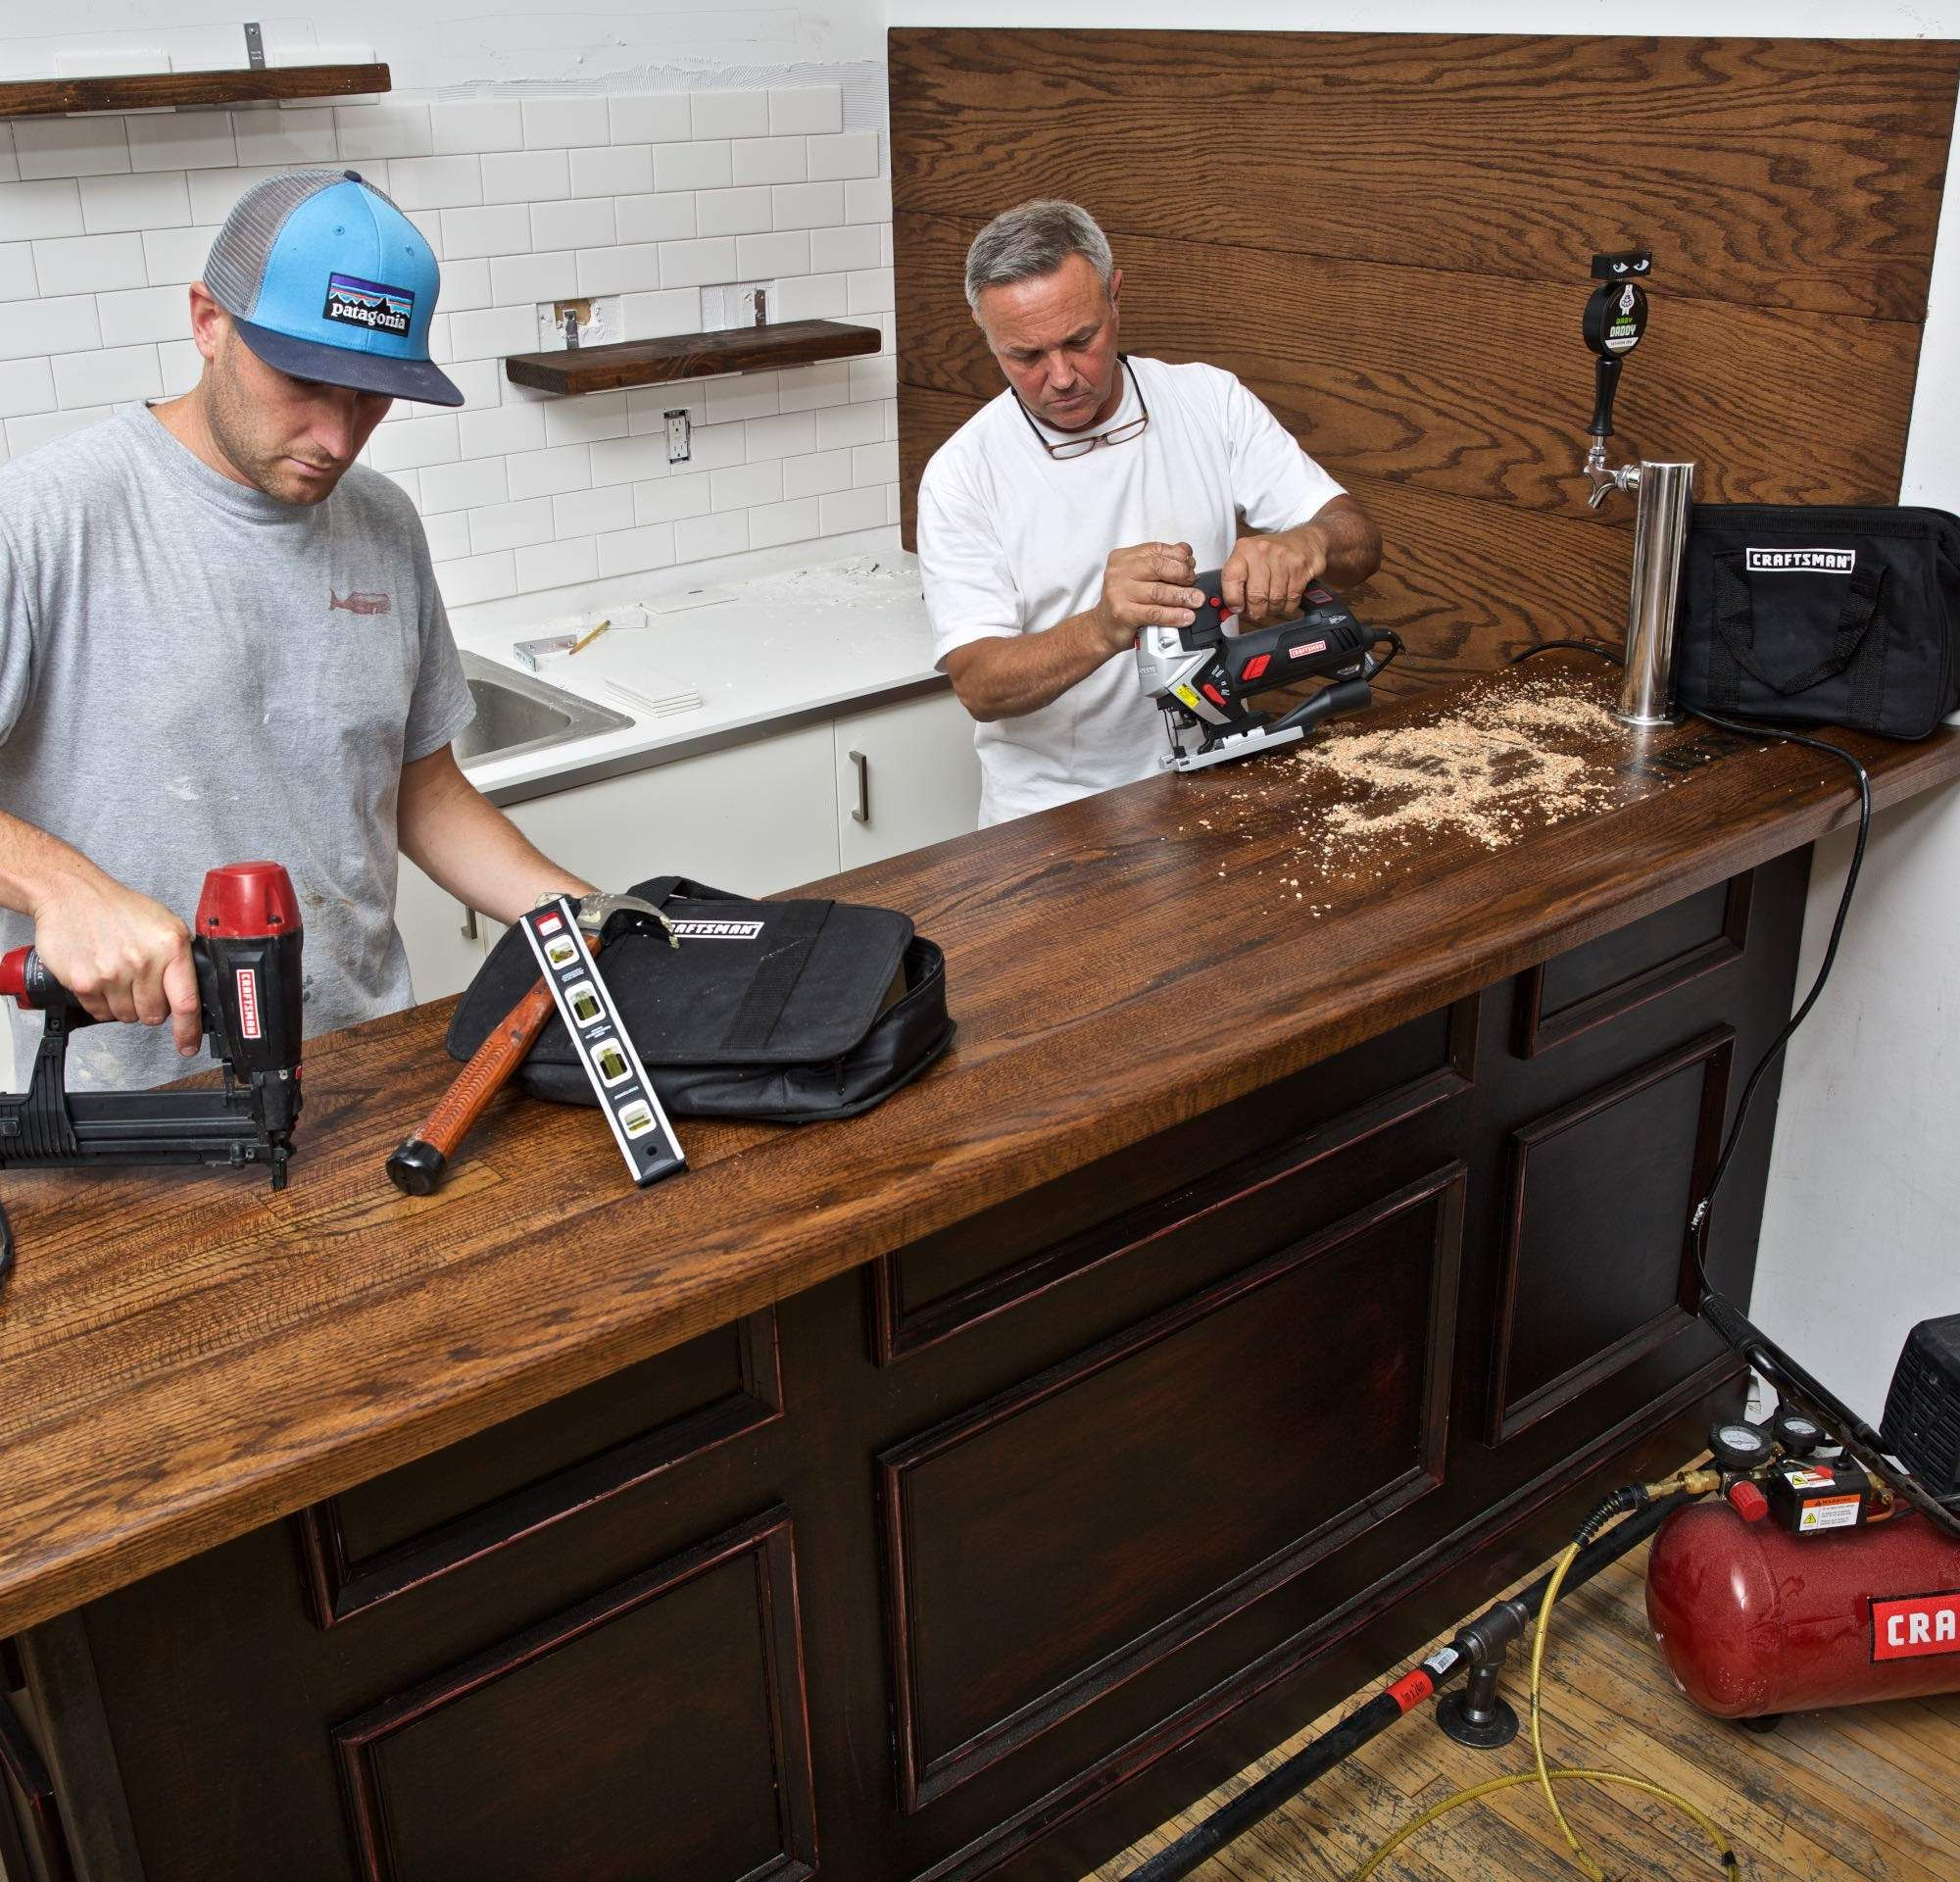 Home Bar Building Plans: How To Build A Home Bar: A Step-By-Step Guide